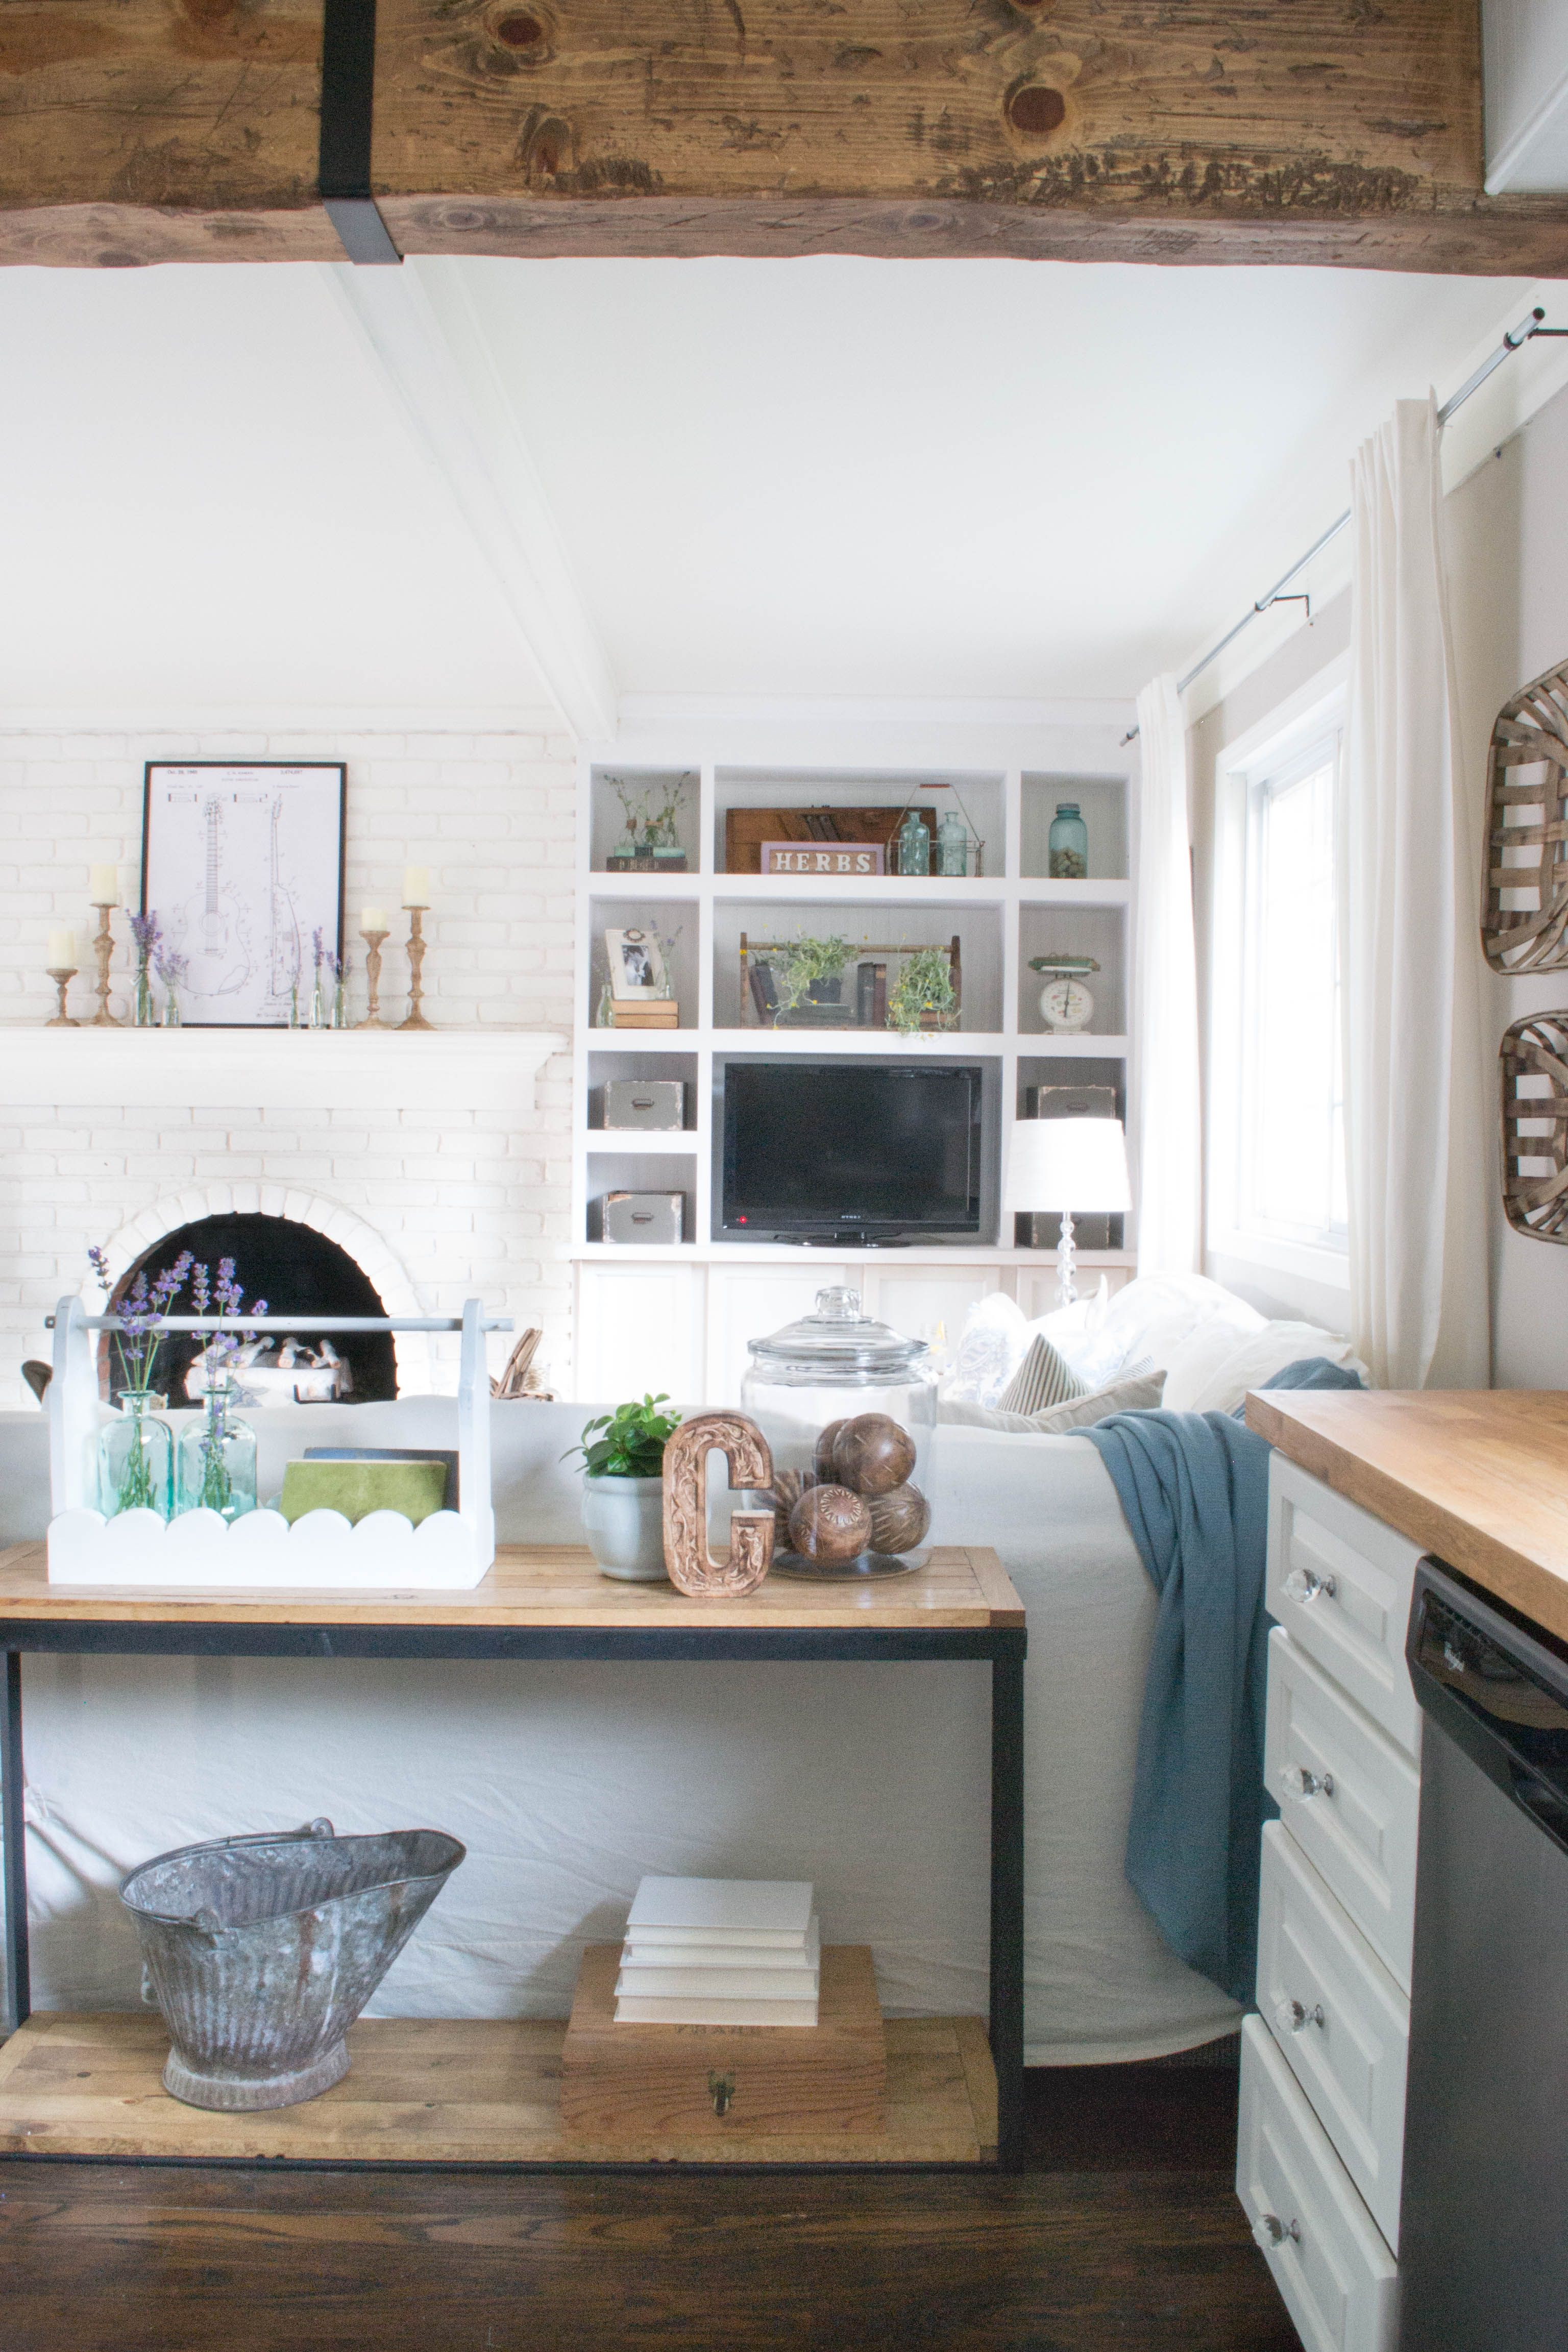 Reclaimed Wood Beam Diy Cover Up A Boring Ceiling Header With This Simple Tutorial For Hgtv Worthy Idea